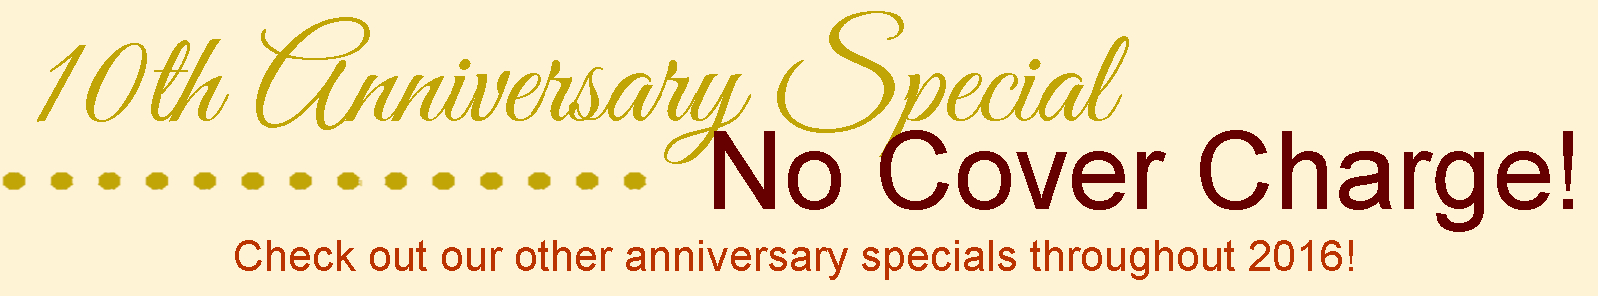 10th Anniversary Special, No cover charge for Jazz shows in Feb/March